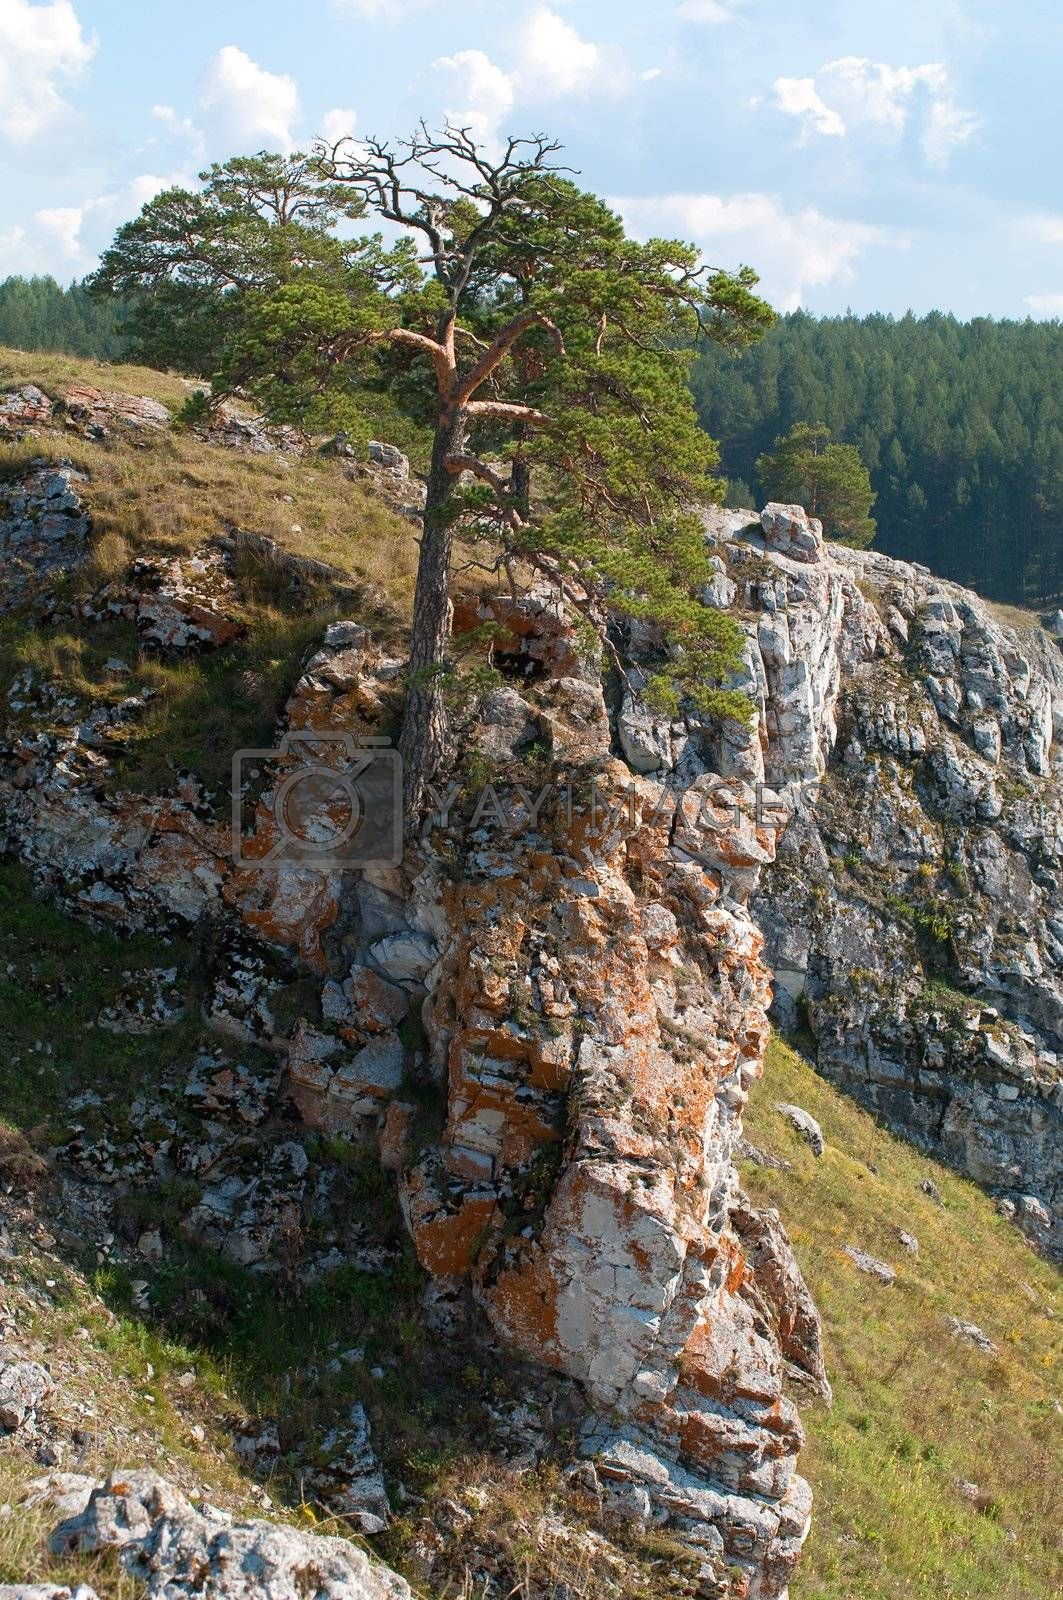 Royalty free image of Pine on a rock by Shpinat